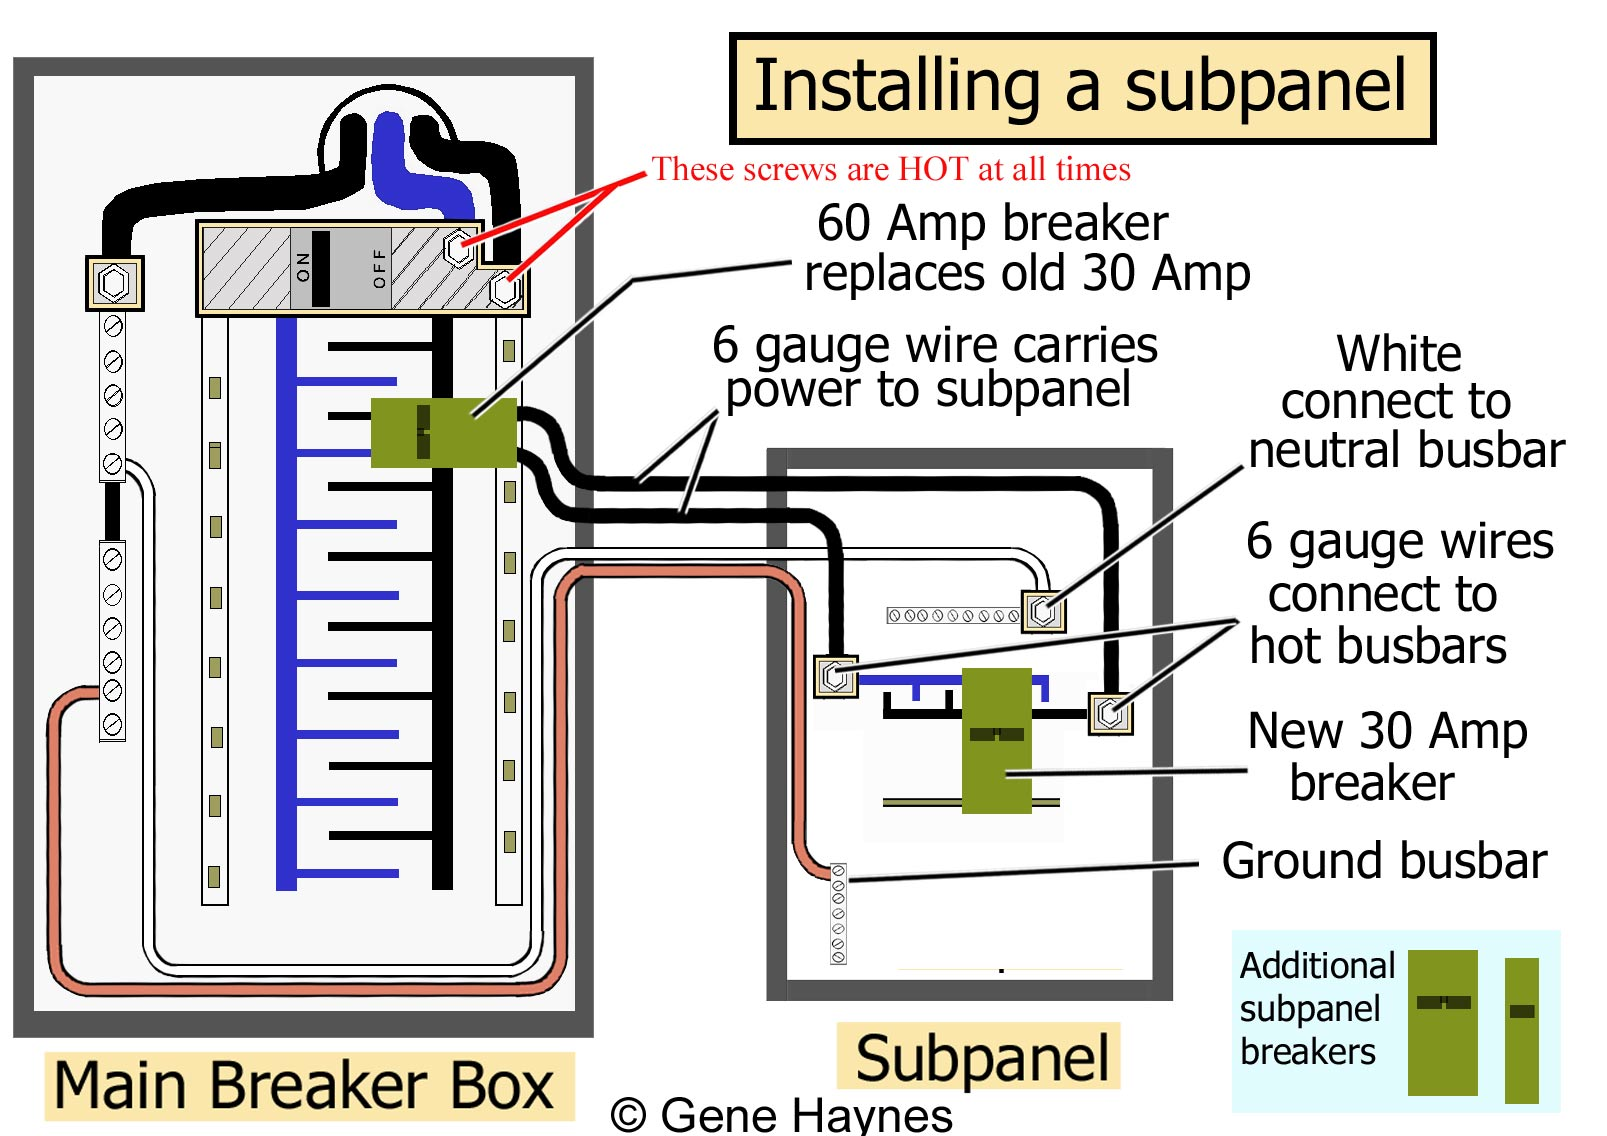 How To Install A Subpanel Main Lug 20 Amp Breaker What Should Be Used Gfci Or Is 15 See Larger 60 With 240volt And 120volt Use Both Breakers 1 150 Replaces Any 240 In Box